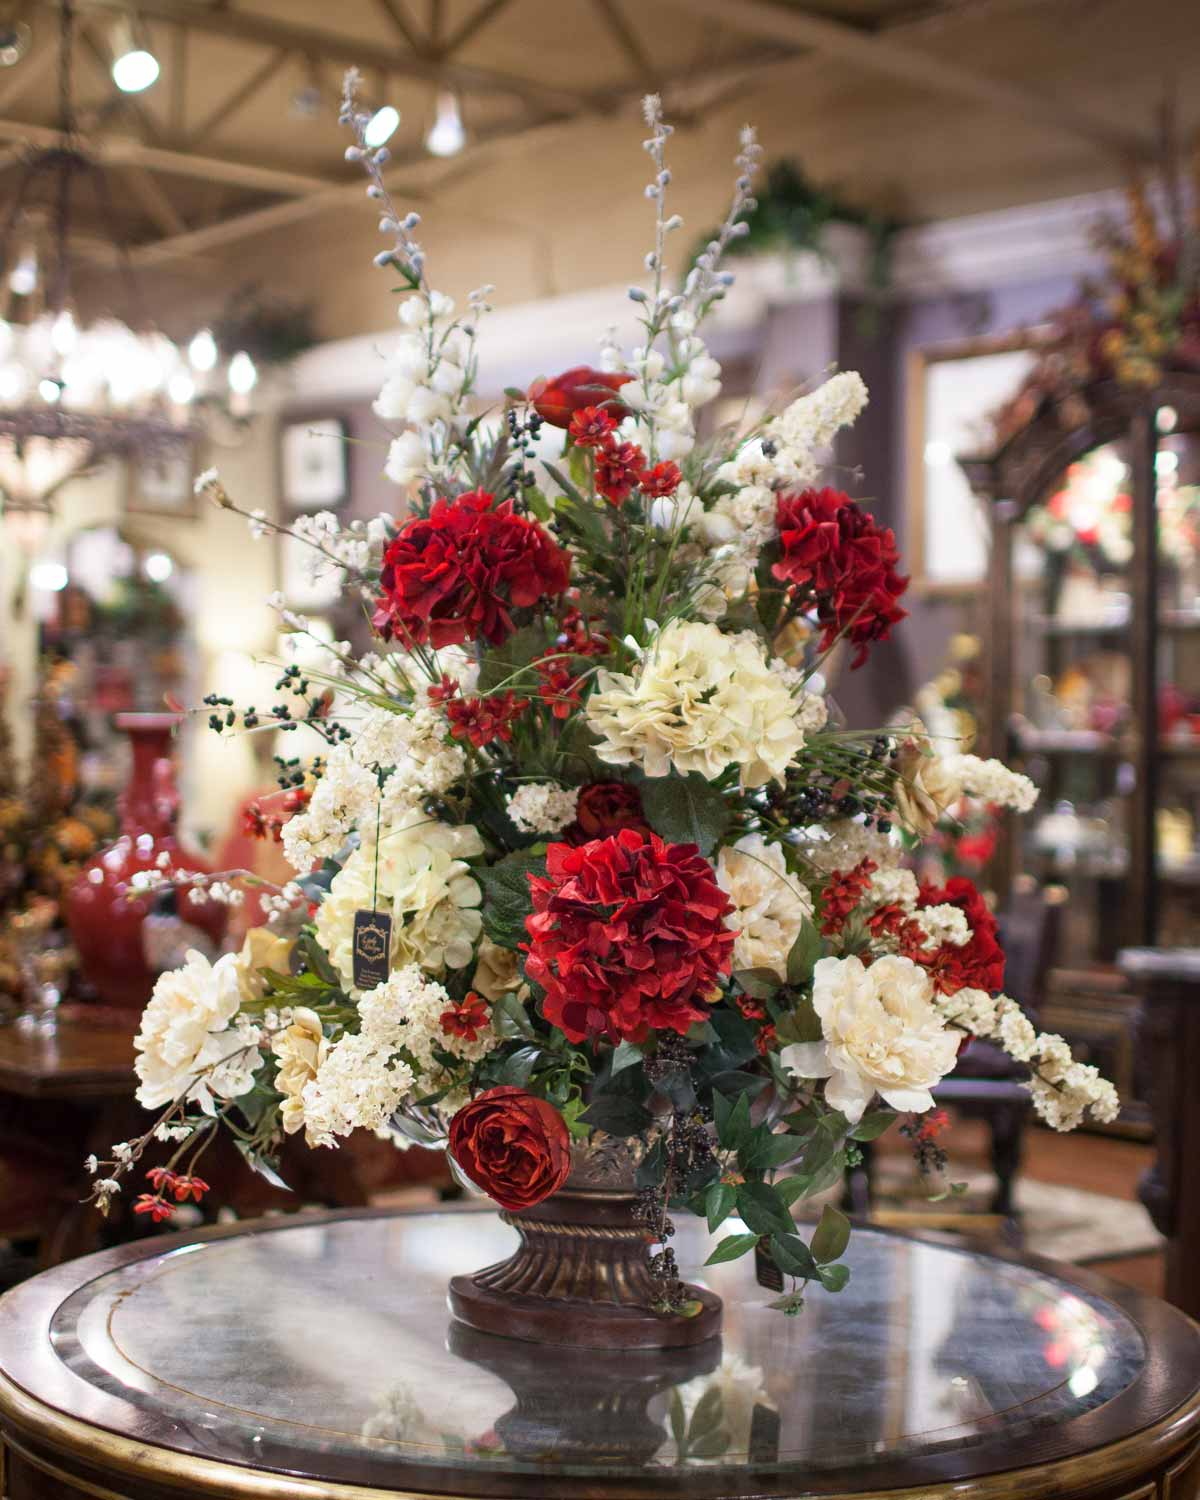 Silk floral seasonal decor linly designs silk flower centerpiece arrangement mightylinksfo Image collections